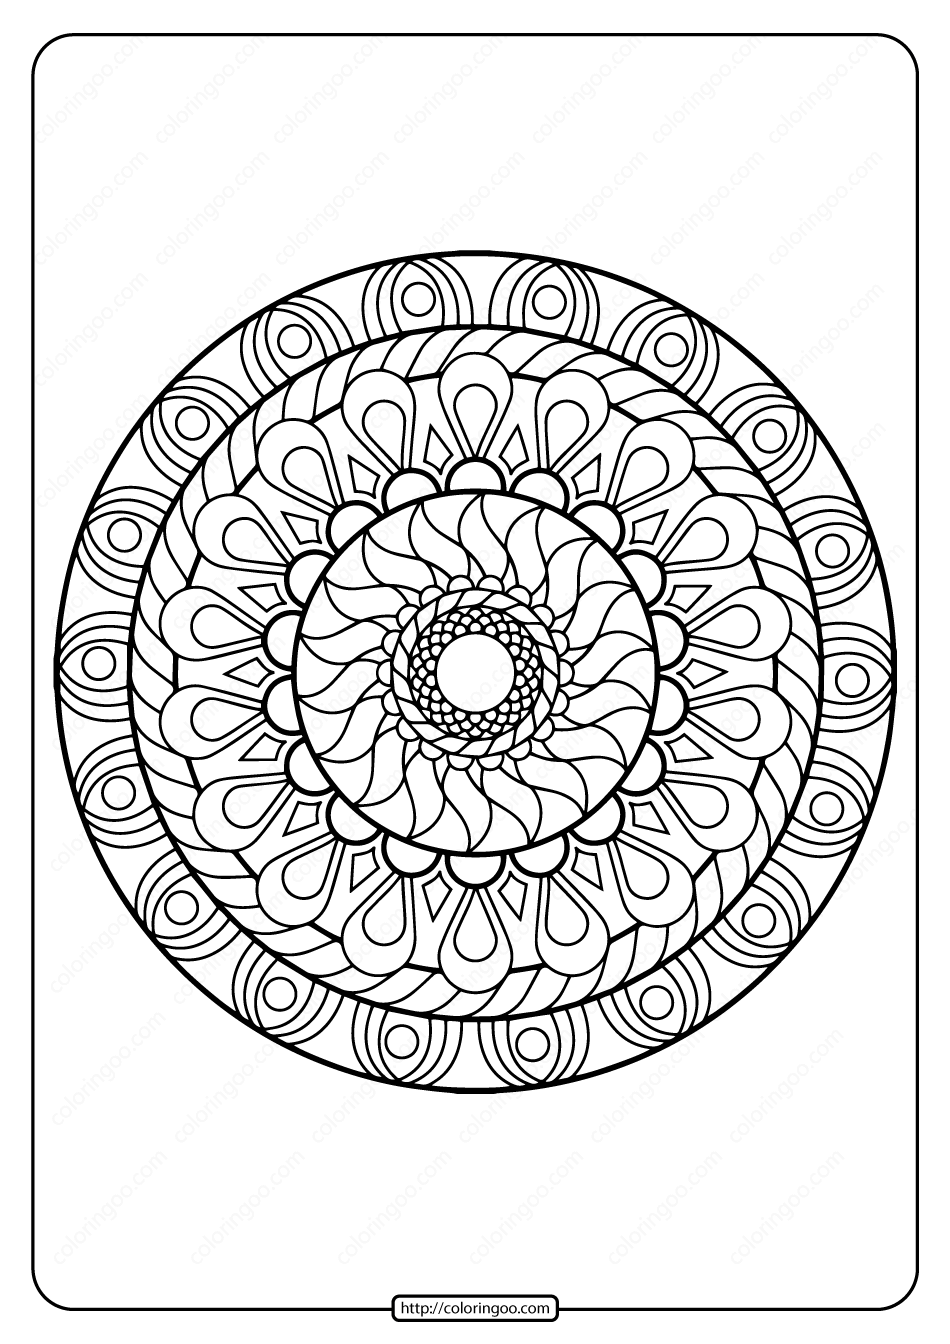 Printable PDF Coloring Book Pages for Adults 018